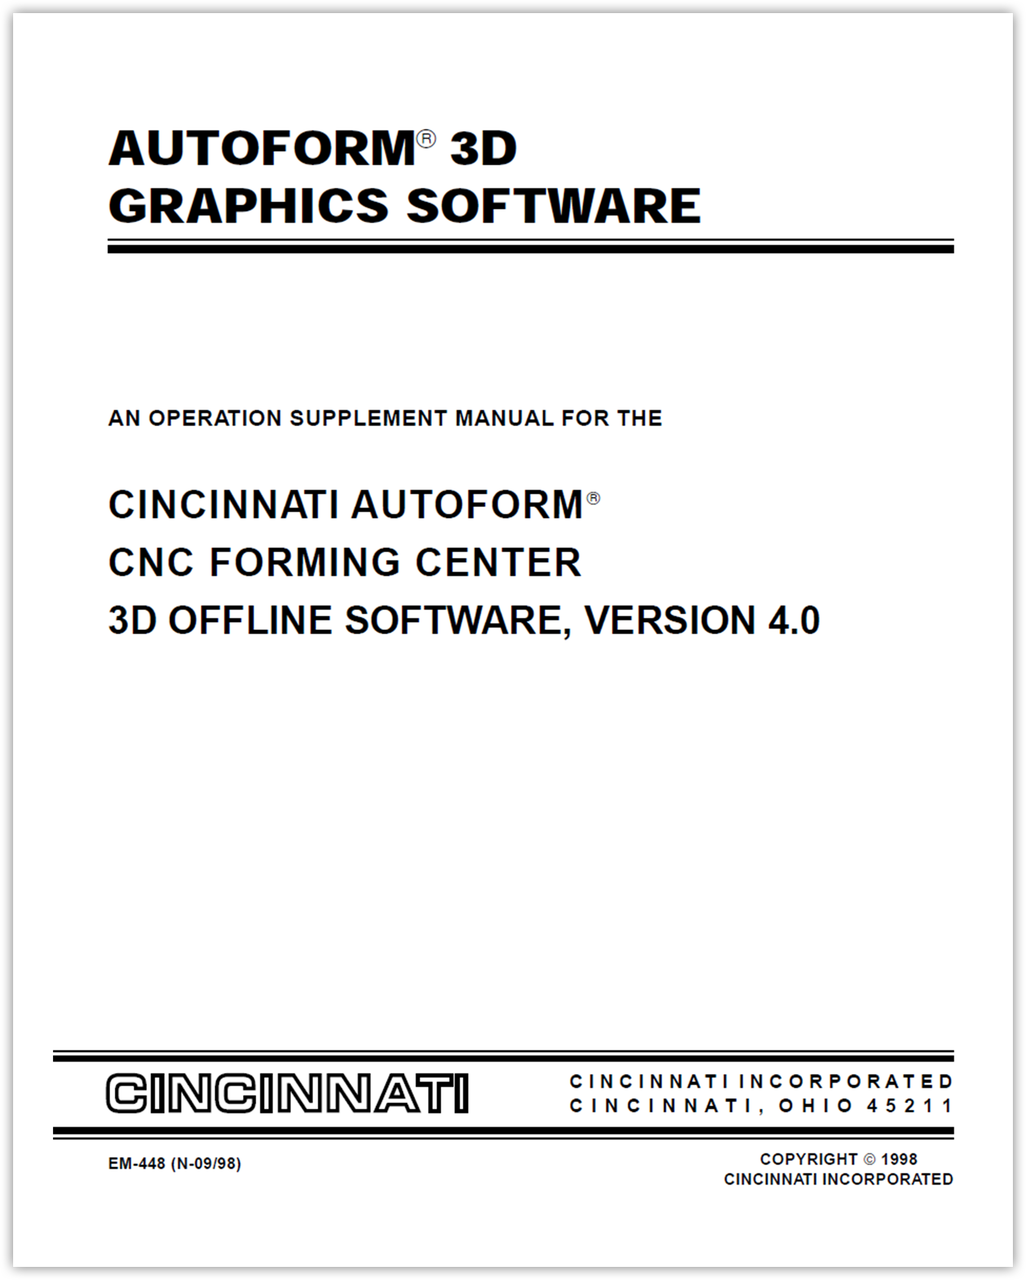 EM-448 (N-09-98) AUTOFORM 3D Graphics Software - An Operation Supplement Manual for the AUTOFORM CNC Forming Center 3D Offline Software, Version 4.0